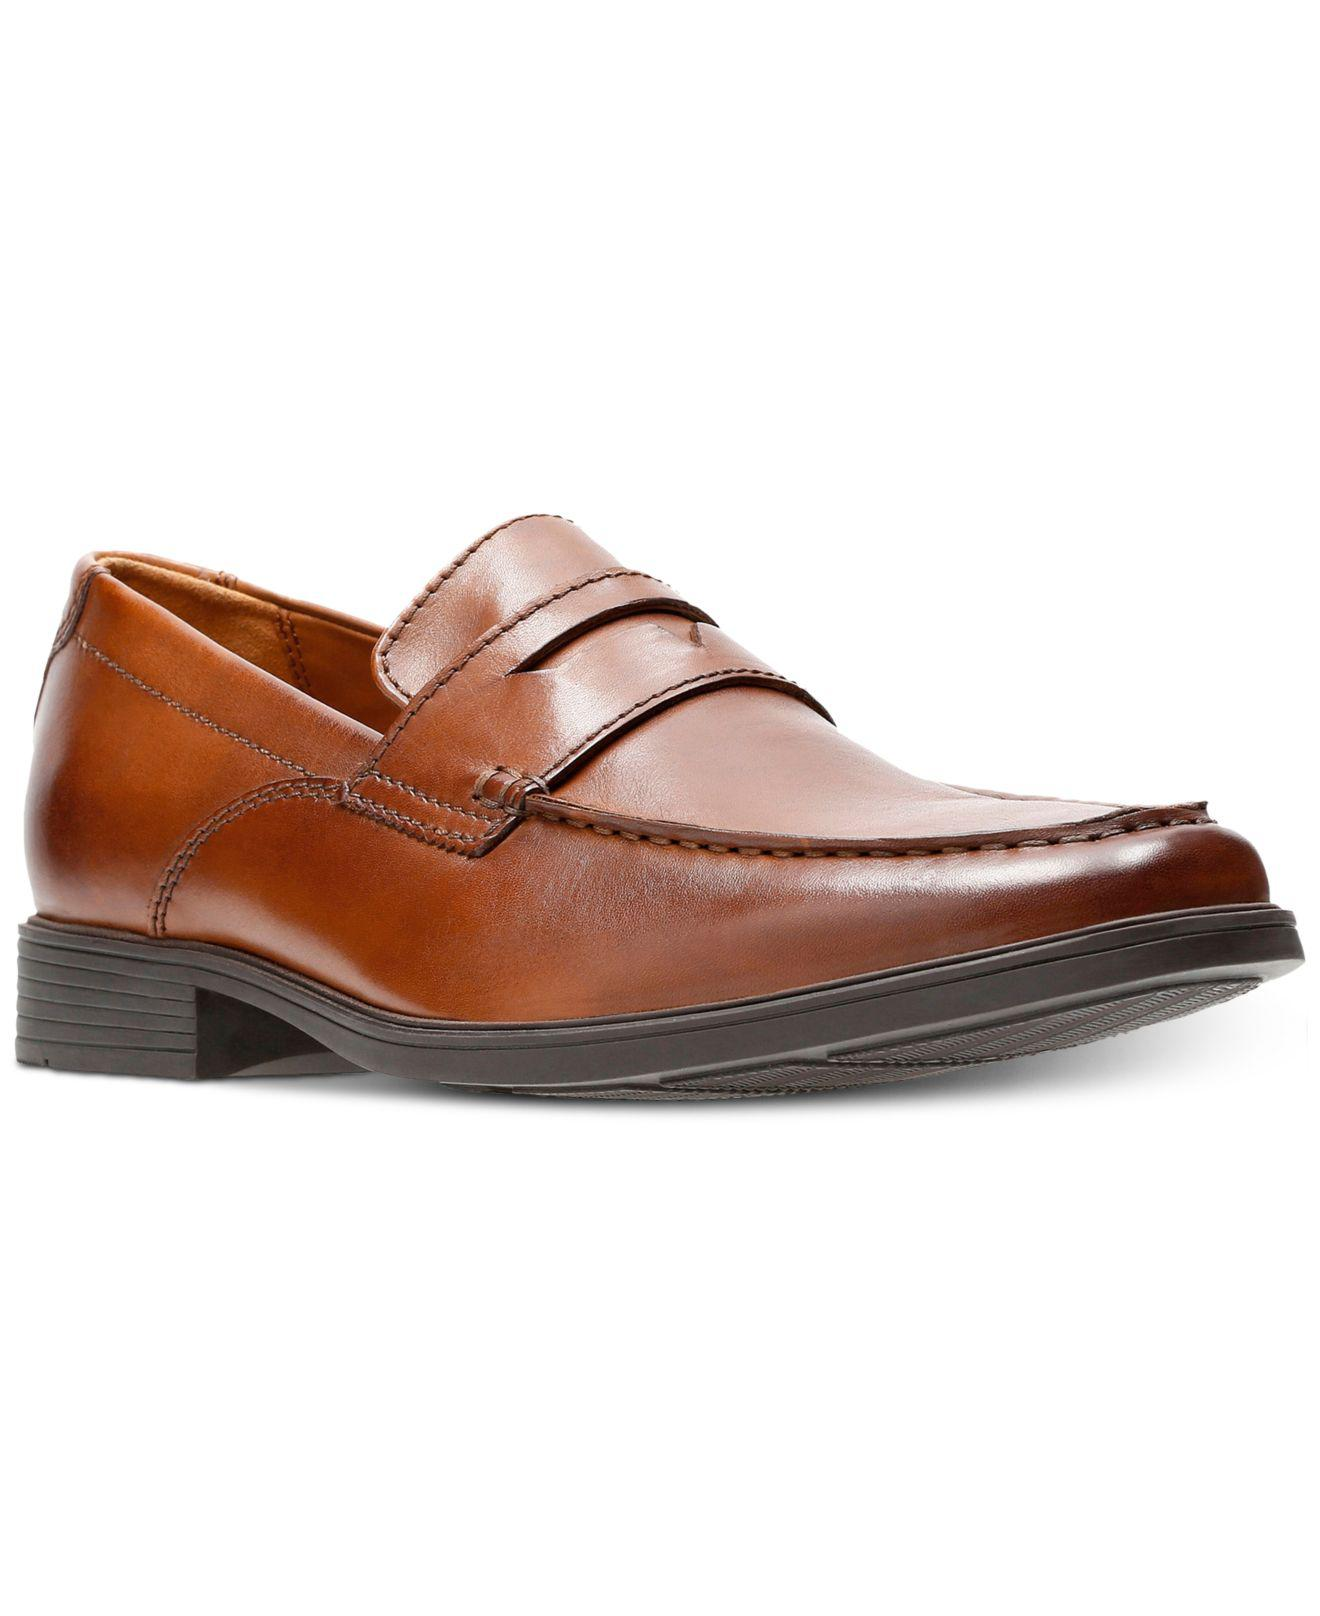 cheap official site original cheap price Men's Clarks Tilden Way Slip On Penny Loafers BPeMY